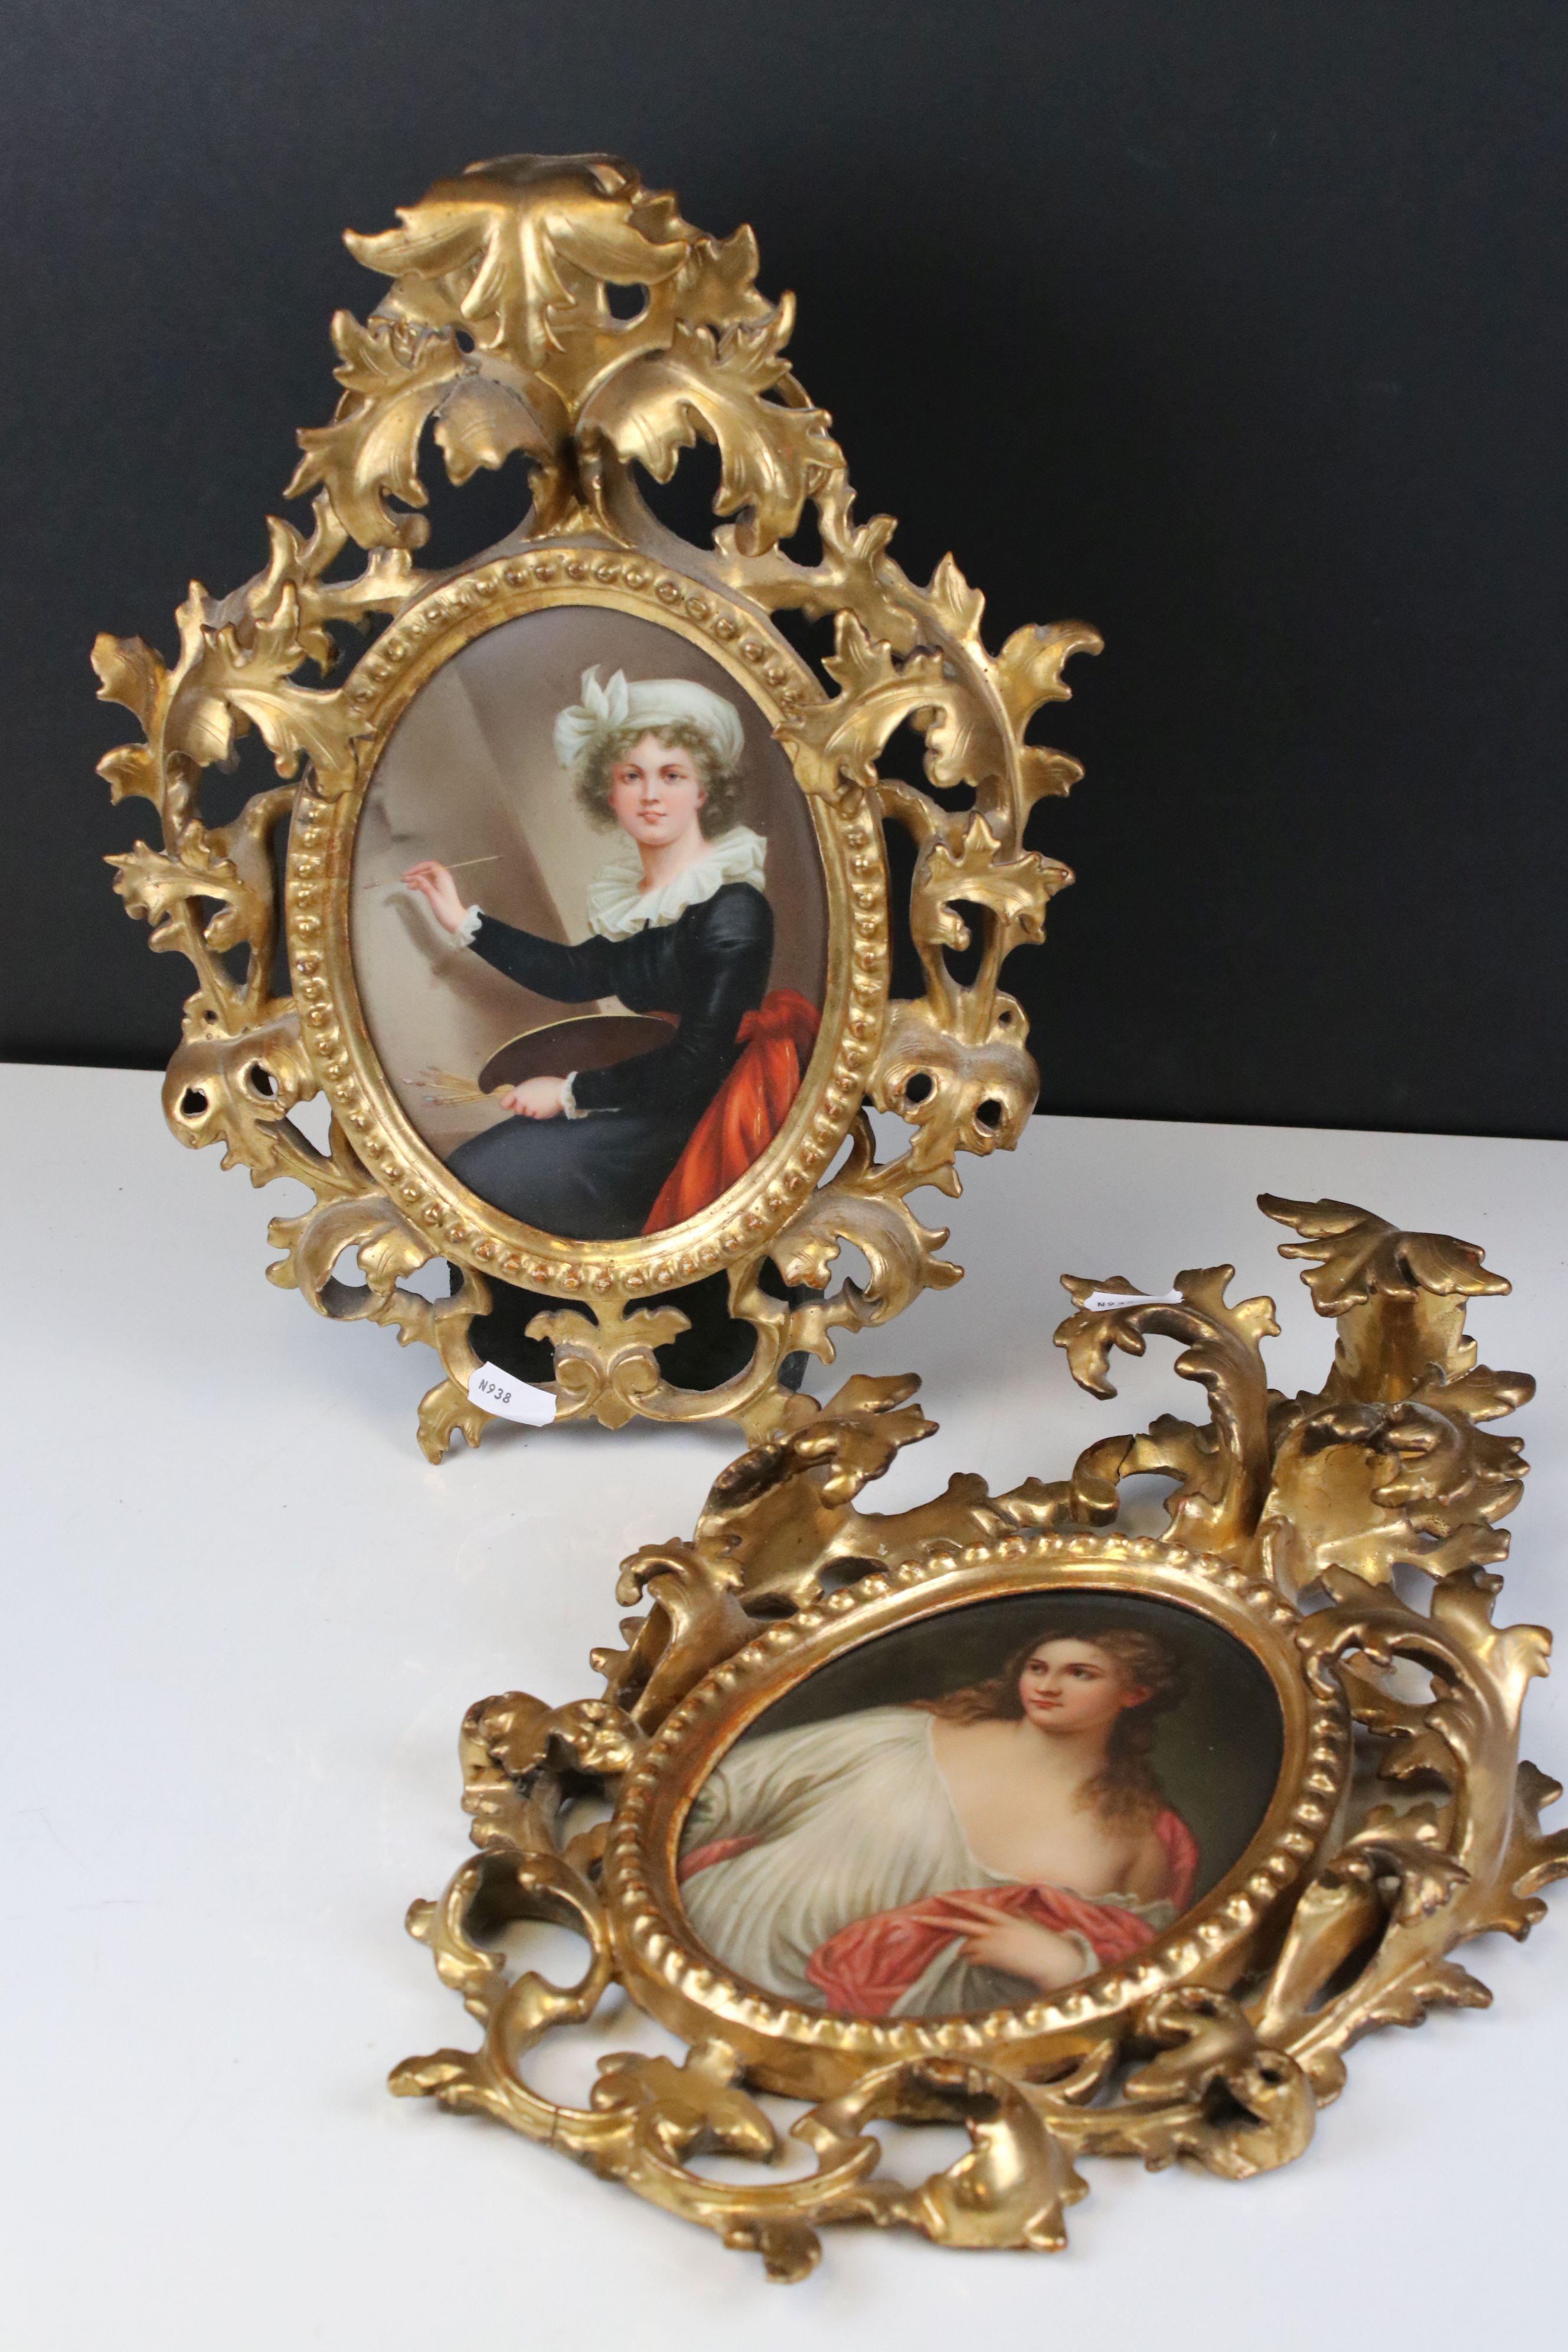 Pair of Late 19th / Early 20th century Oval Ceramic Painted Plaques, one depicting a classical woman